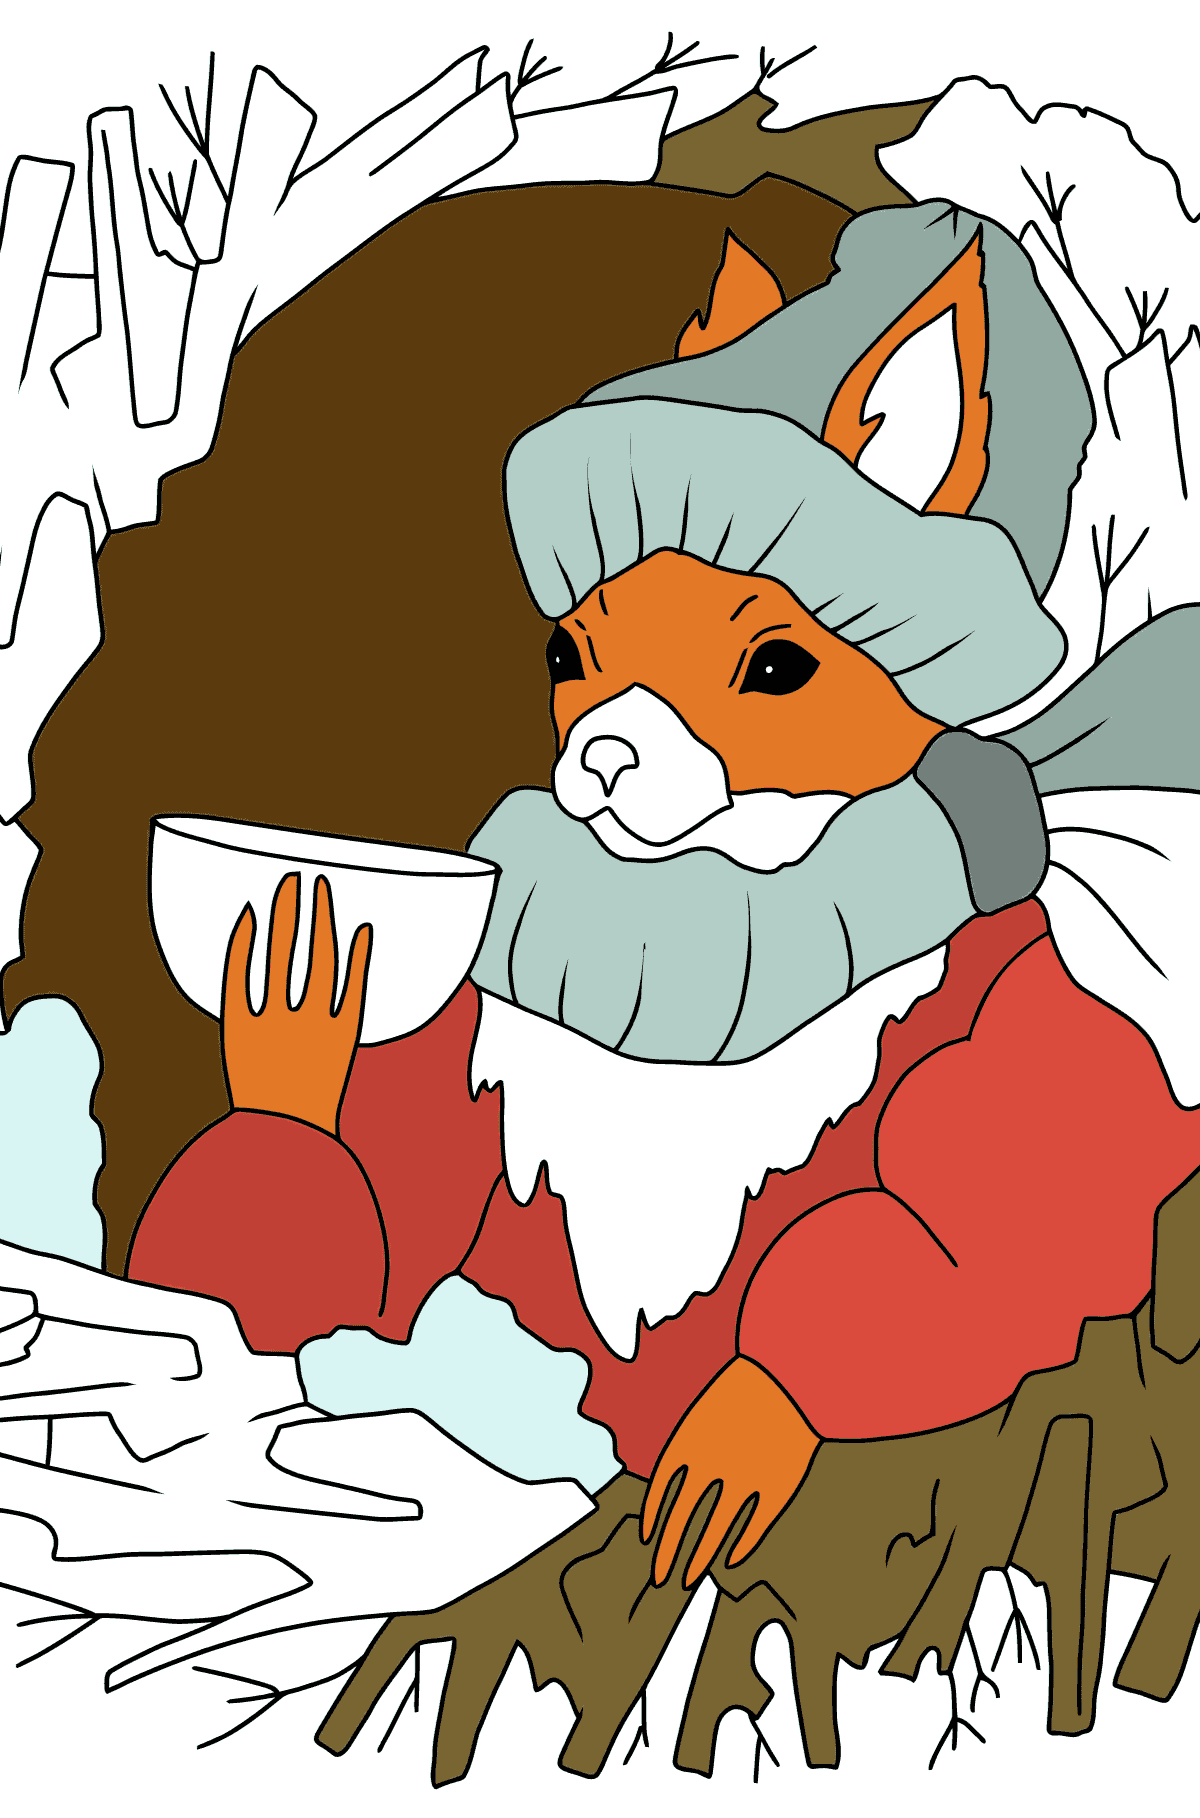 Winter Coloring Page - A Squirrel is Drinking Tea for Kids